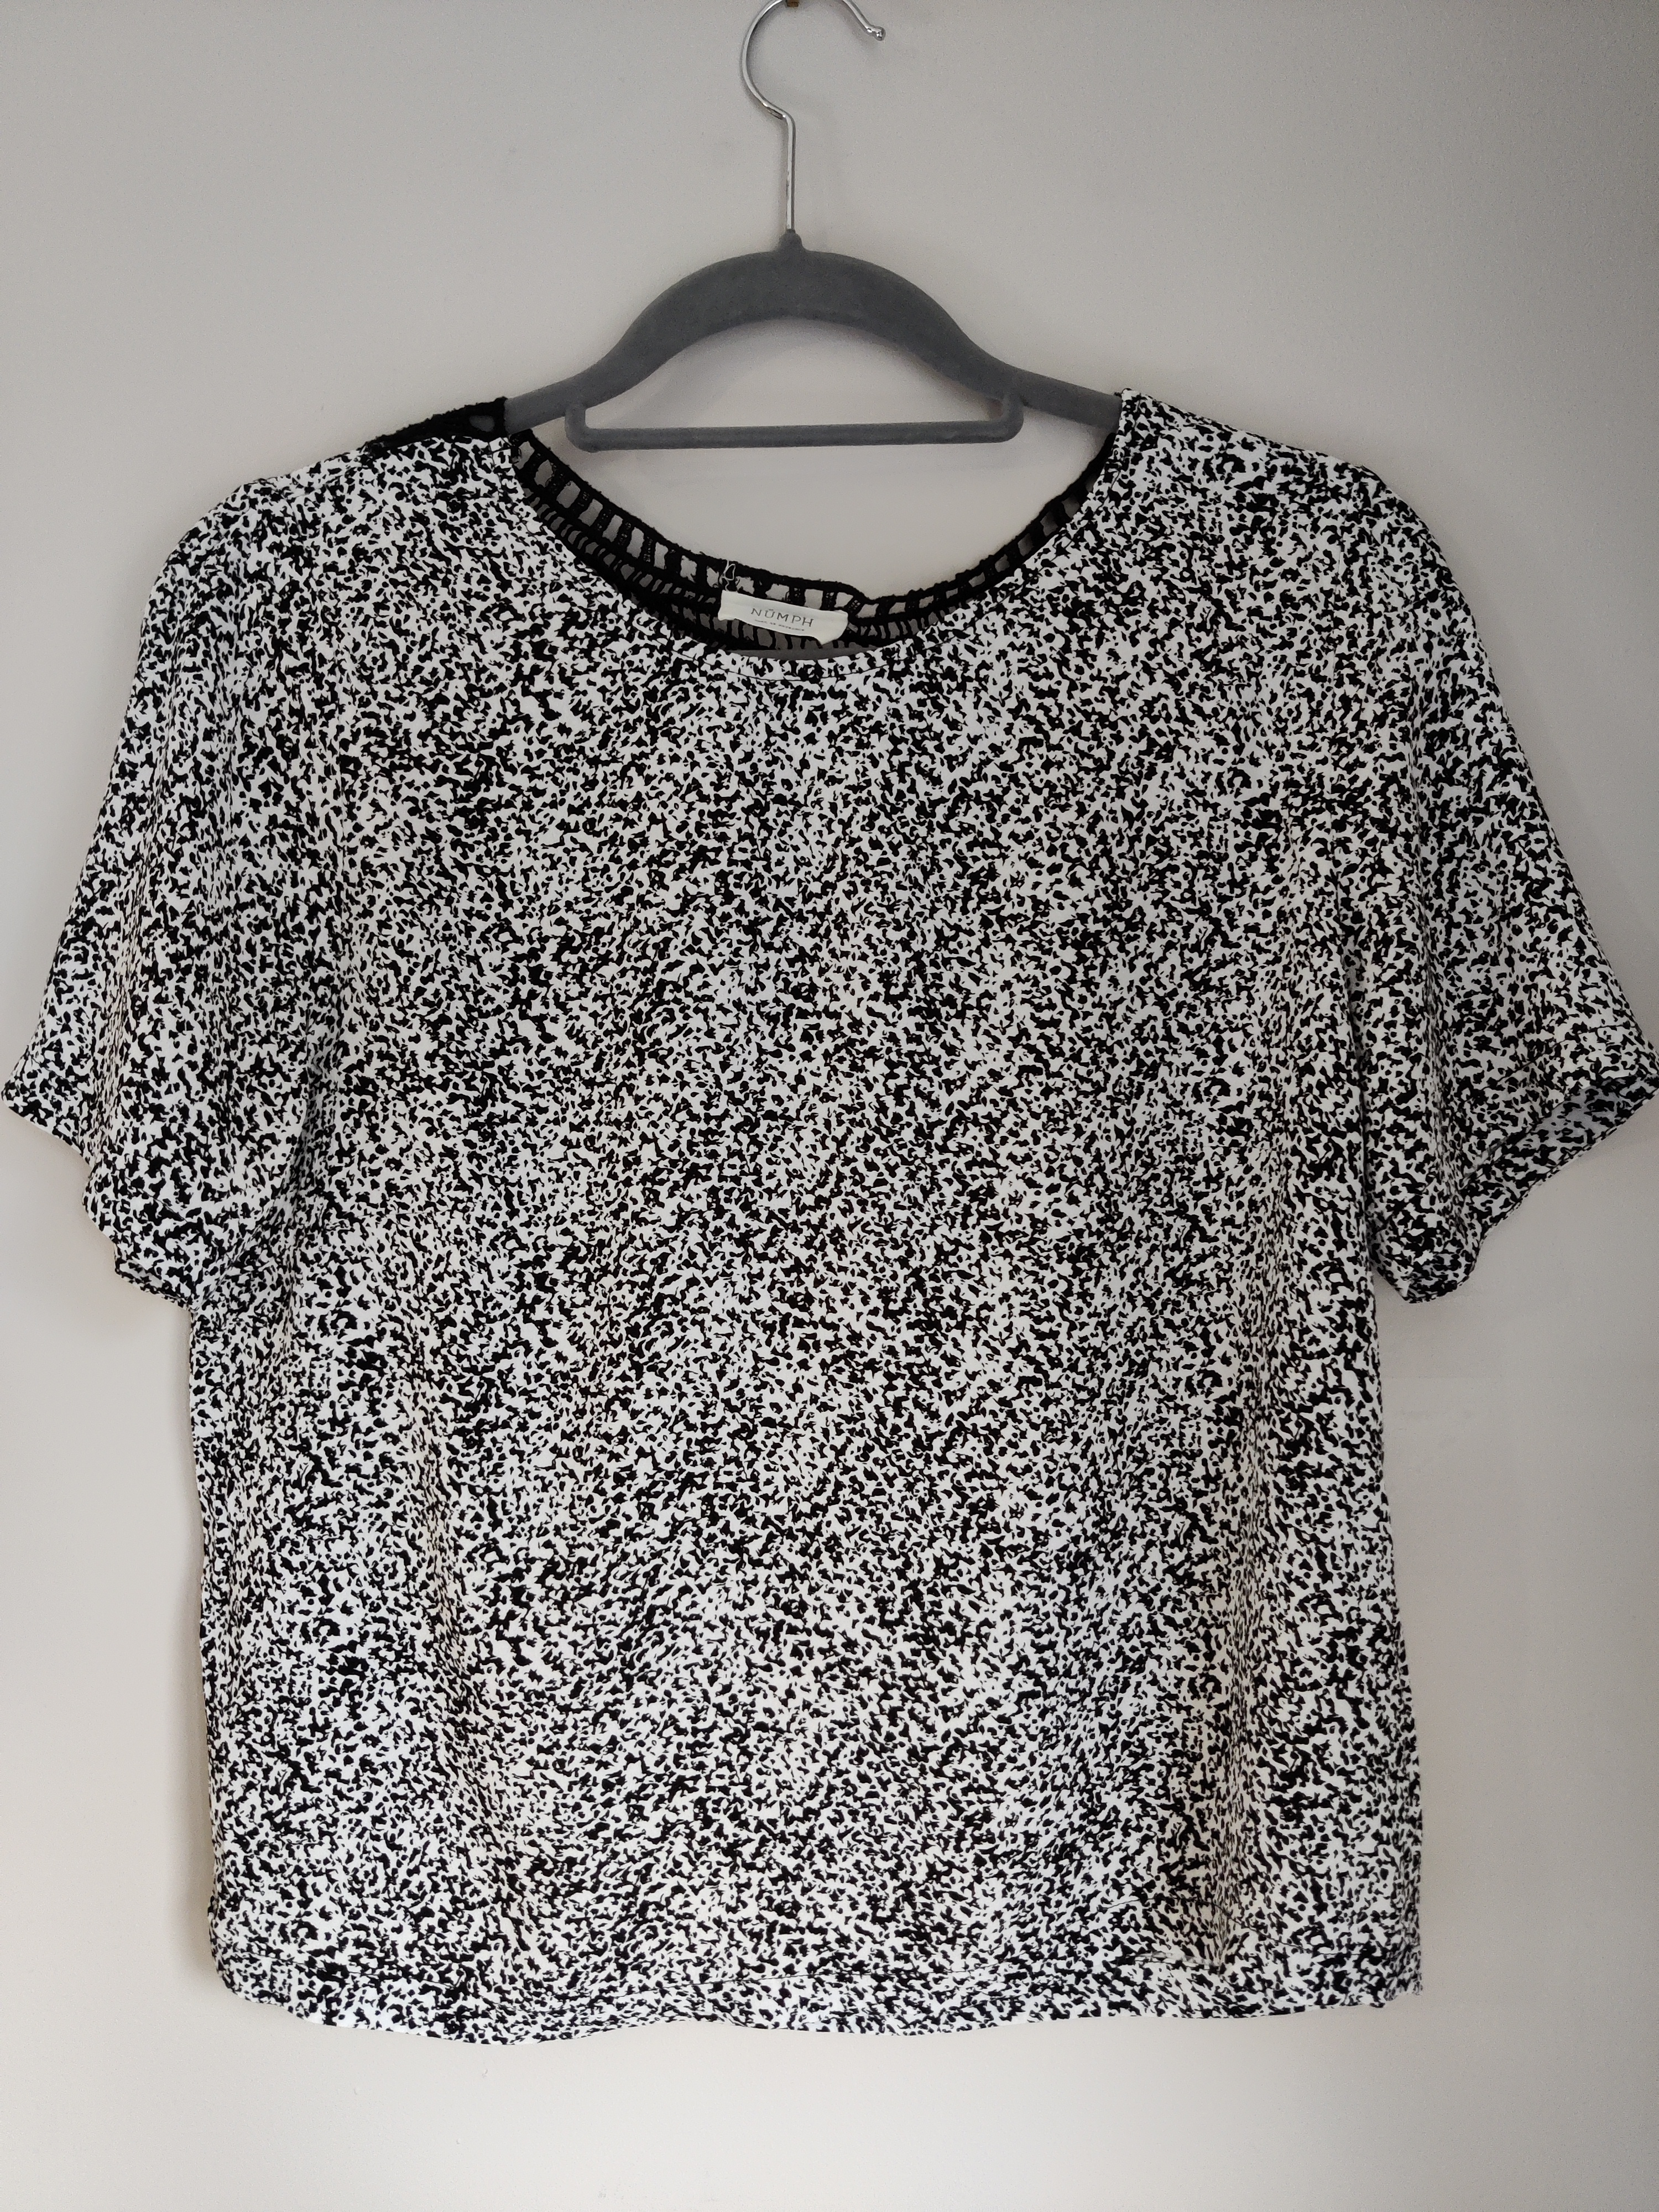 Image of Numph Patterned t-shirt with woven back detail